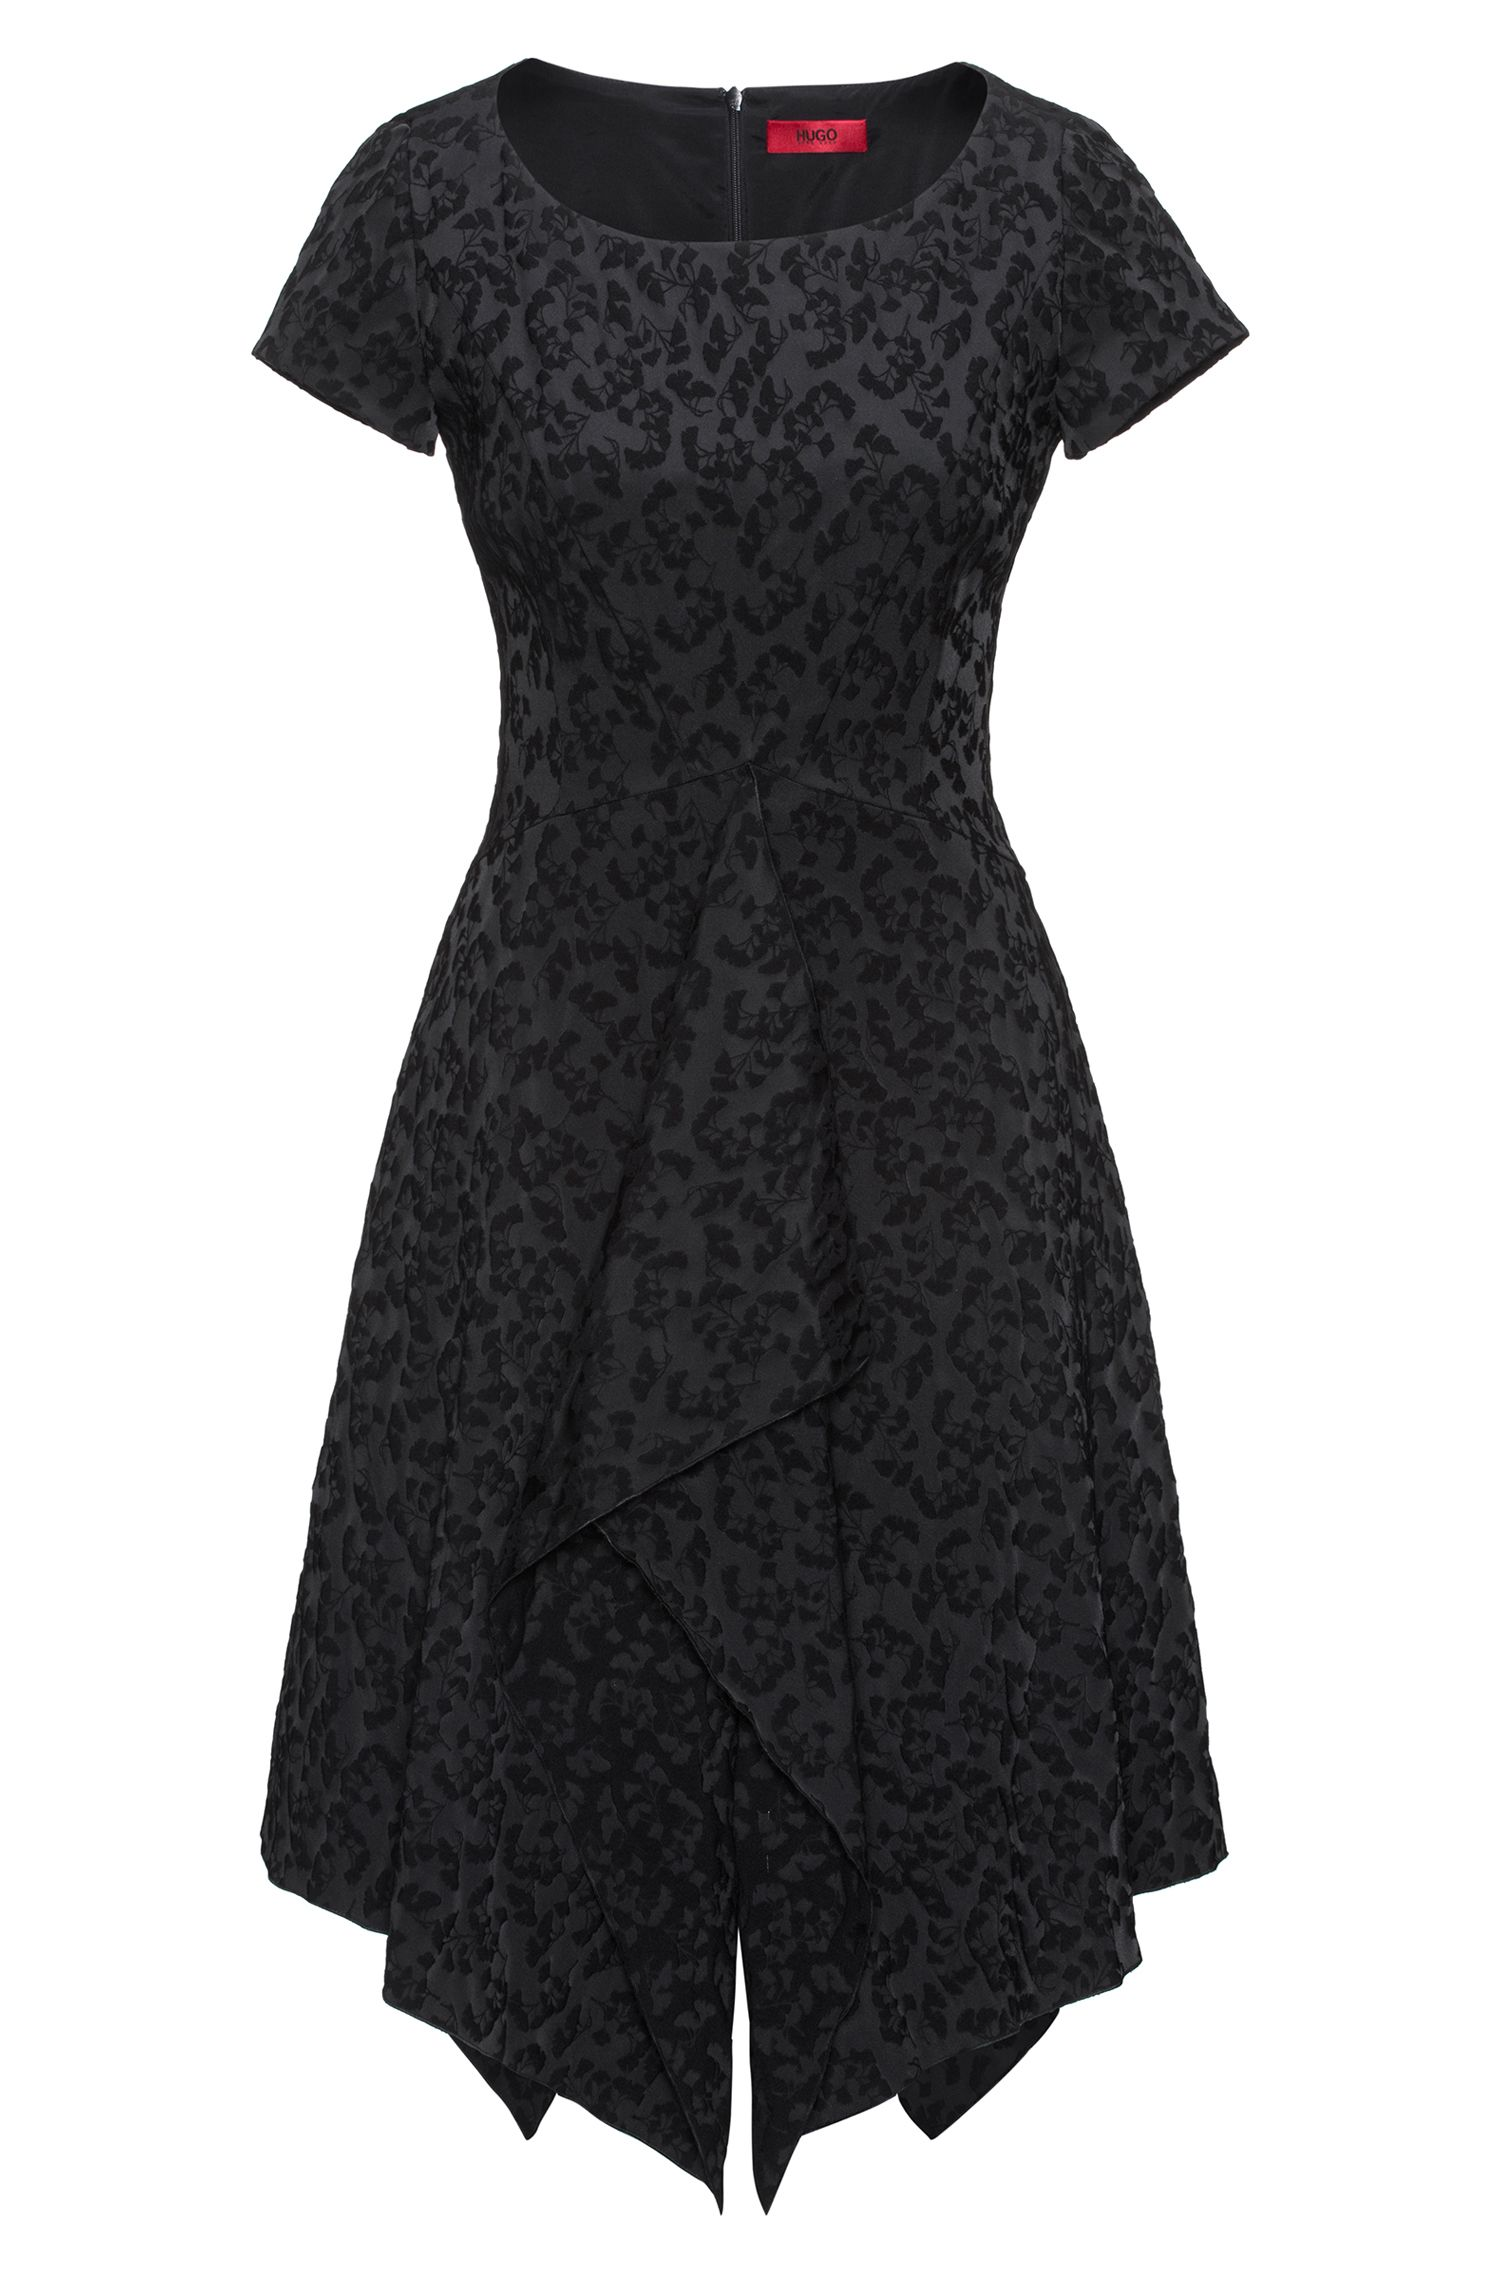 Floral jacquard dress with drape front